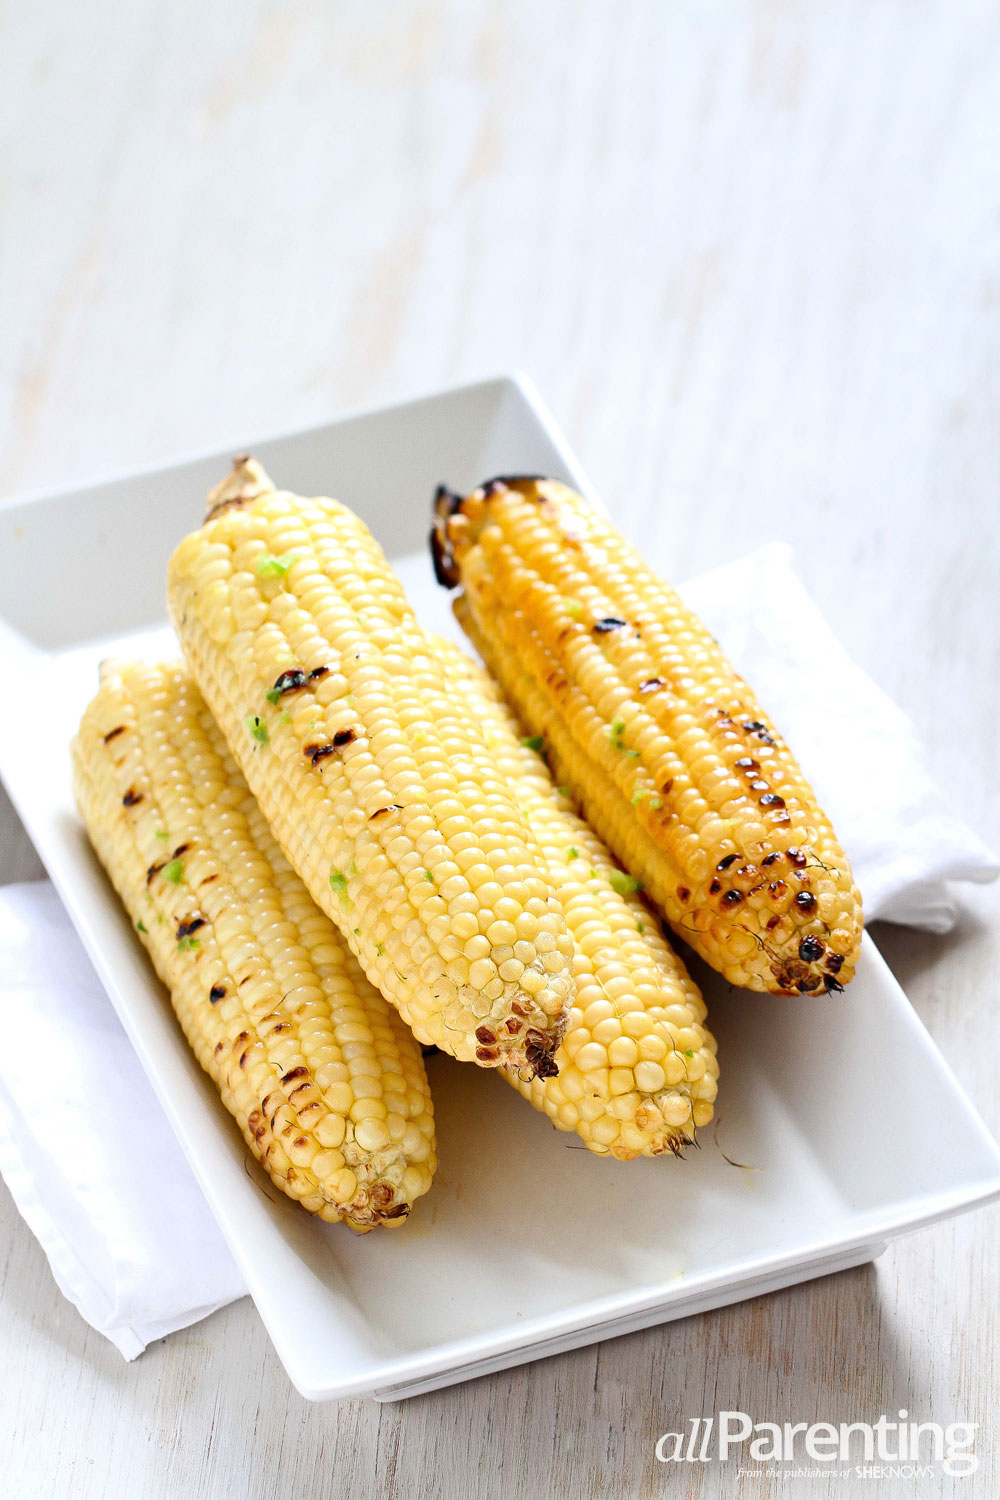 allParenting Grilled corn with lime & jalapeno butter